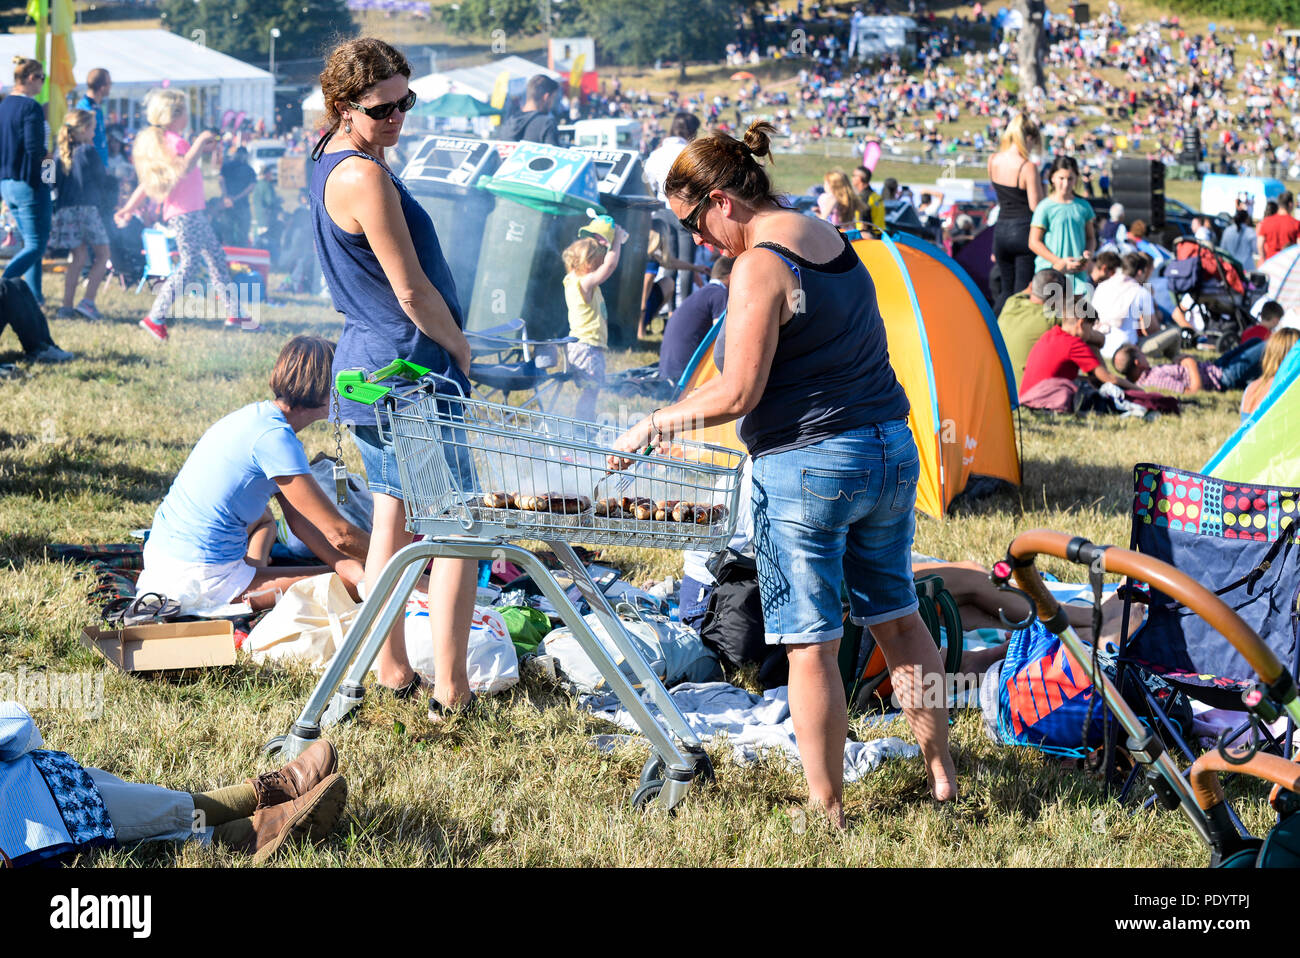 Female using a supermarket trolley as a barbecue to cook sausages in the crowd at the Bristol International Balloon Fiesta. Money saving idea. £1 BBQ - Stock Image